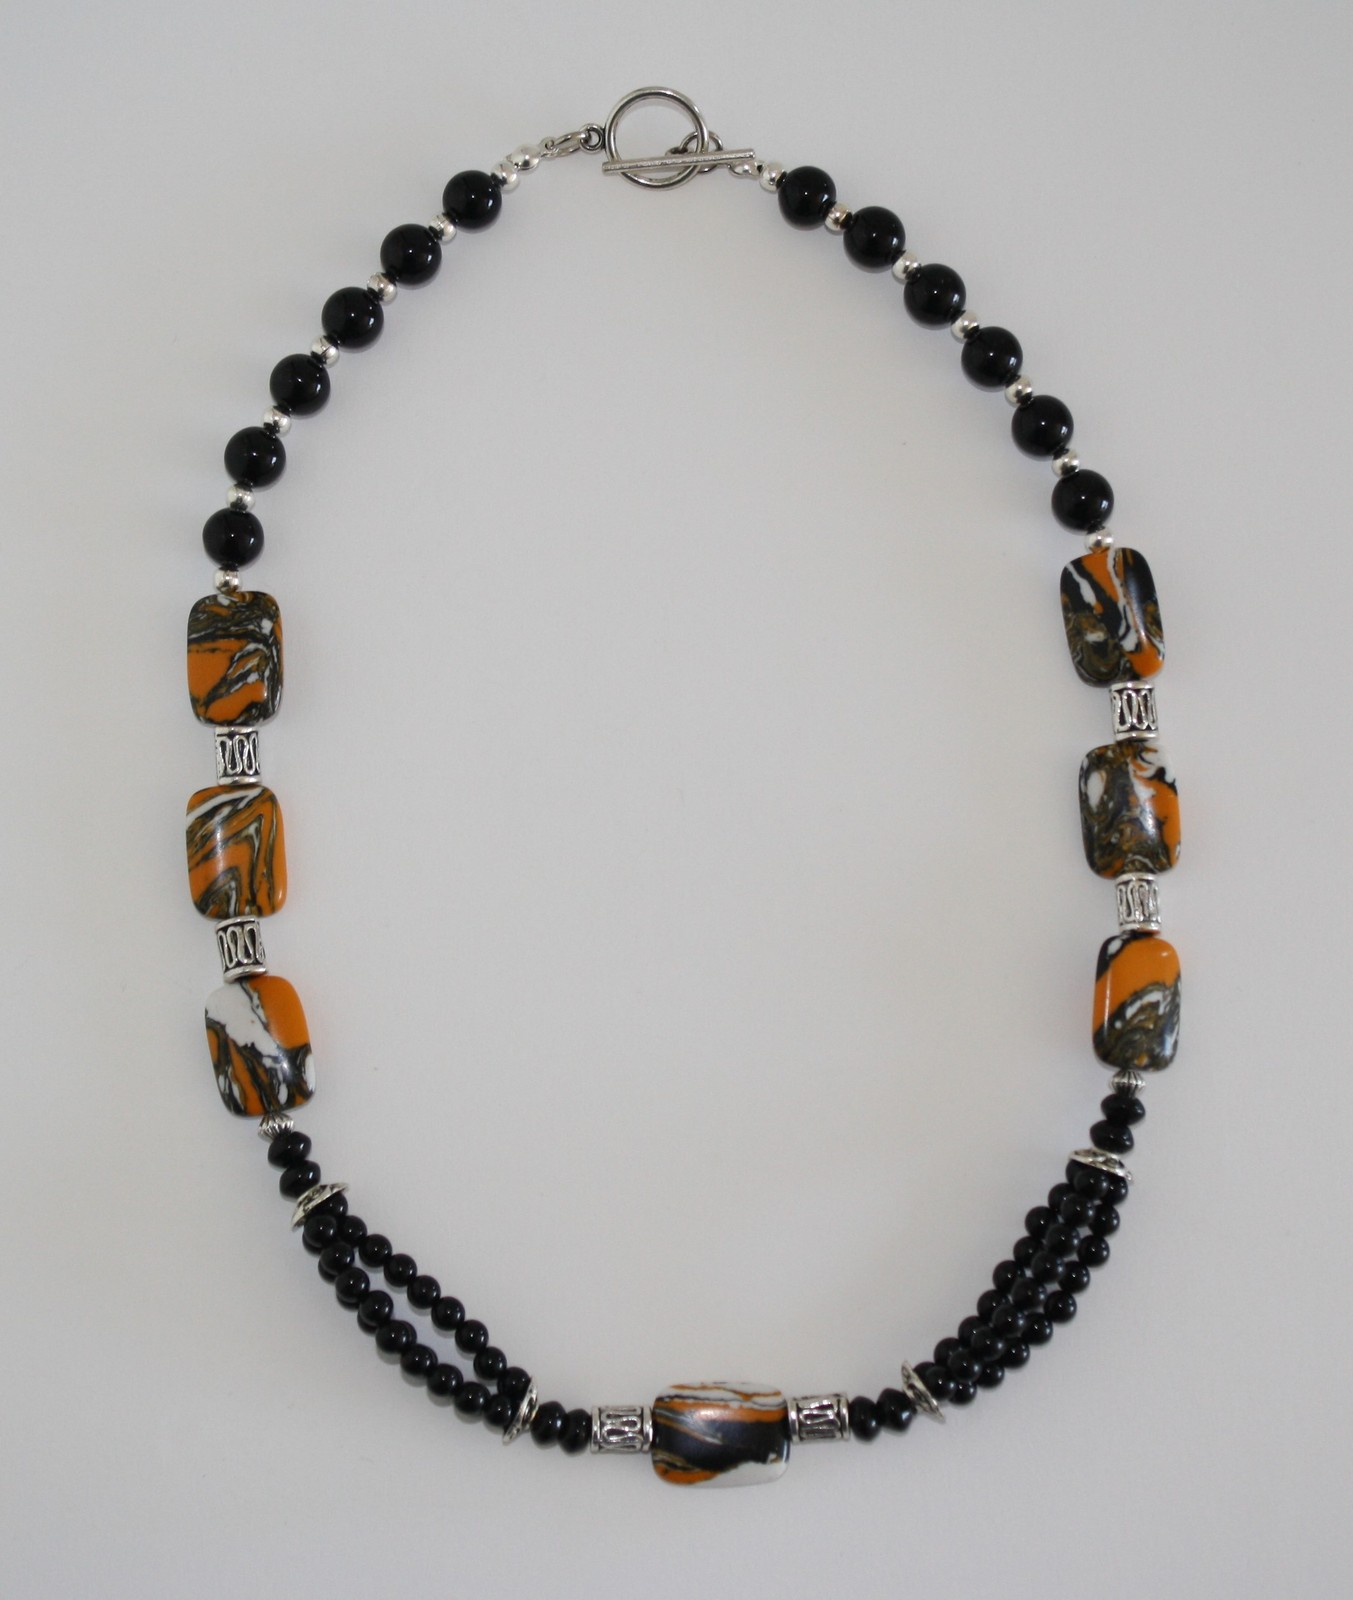 Tiger Skin Turquoise and Onyx Necklace and Earring Set